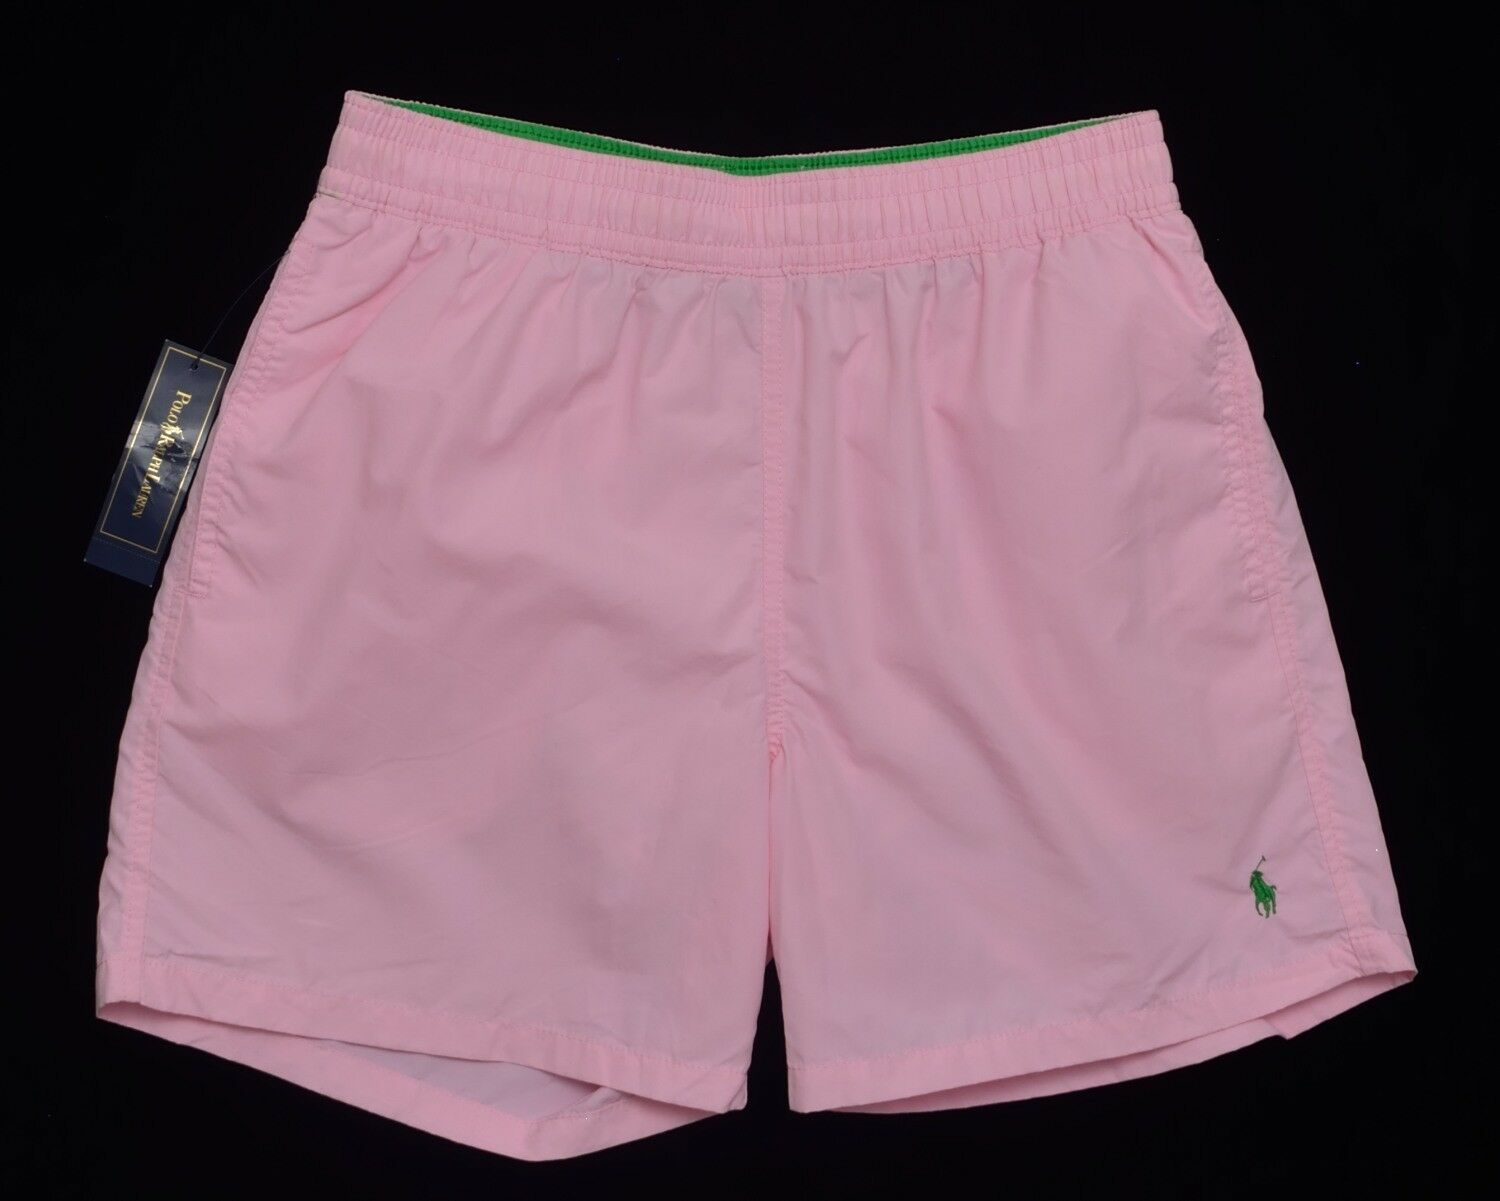 Men's POLO RALPH LAUREN Pink Swimsuit Trunks L Large NWT NEW Green Pony Nice